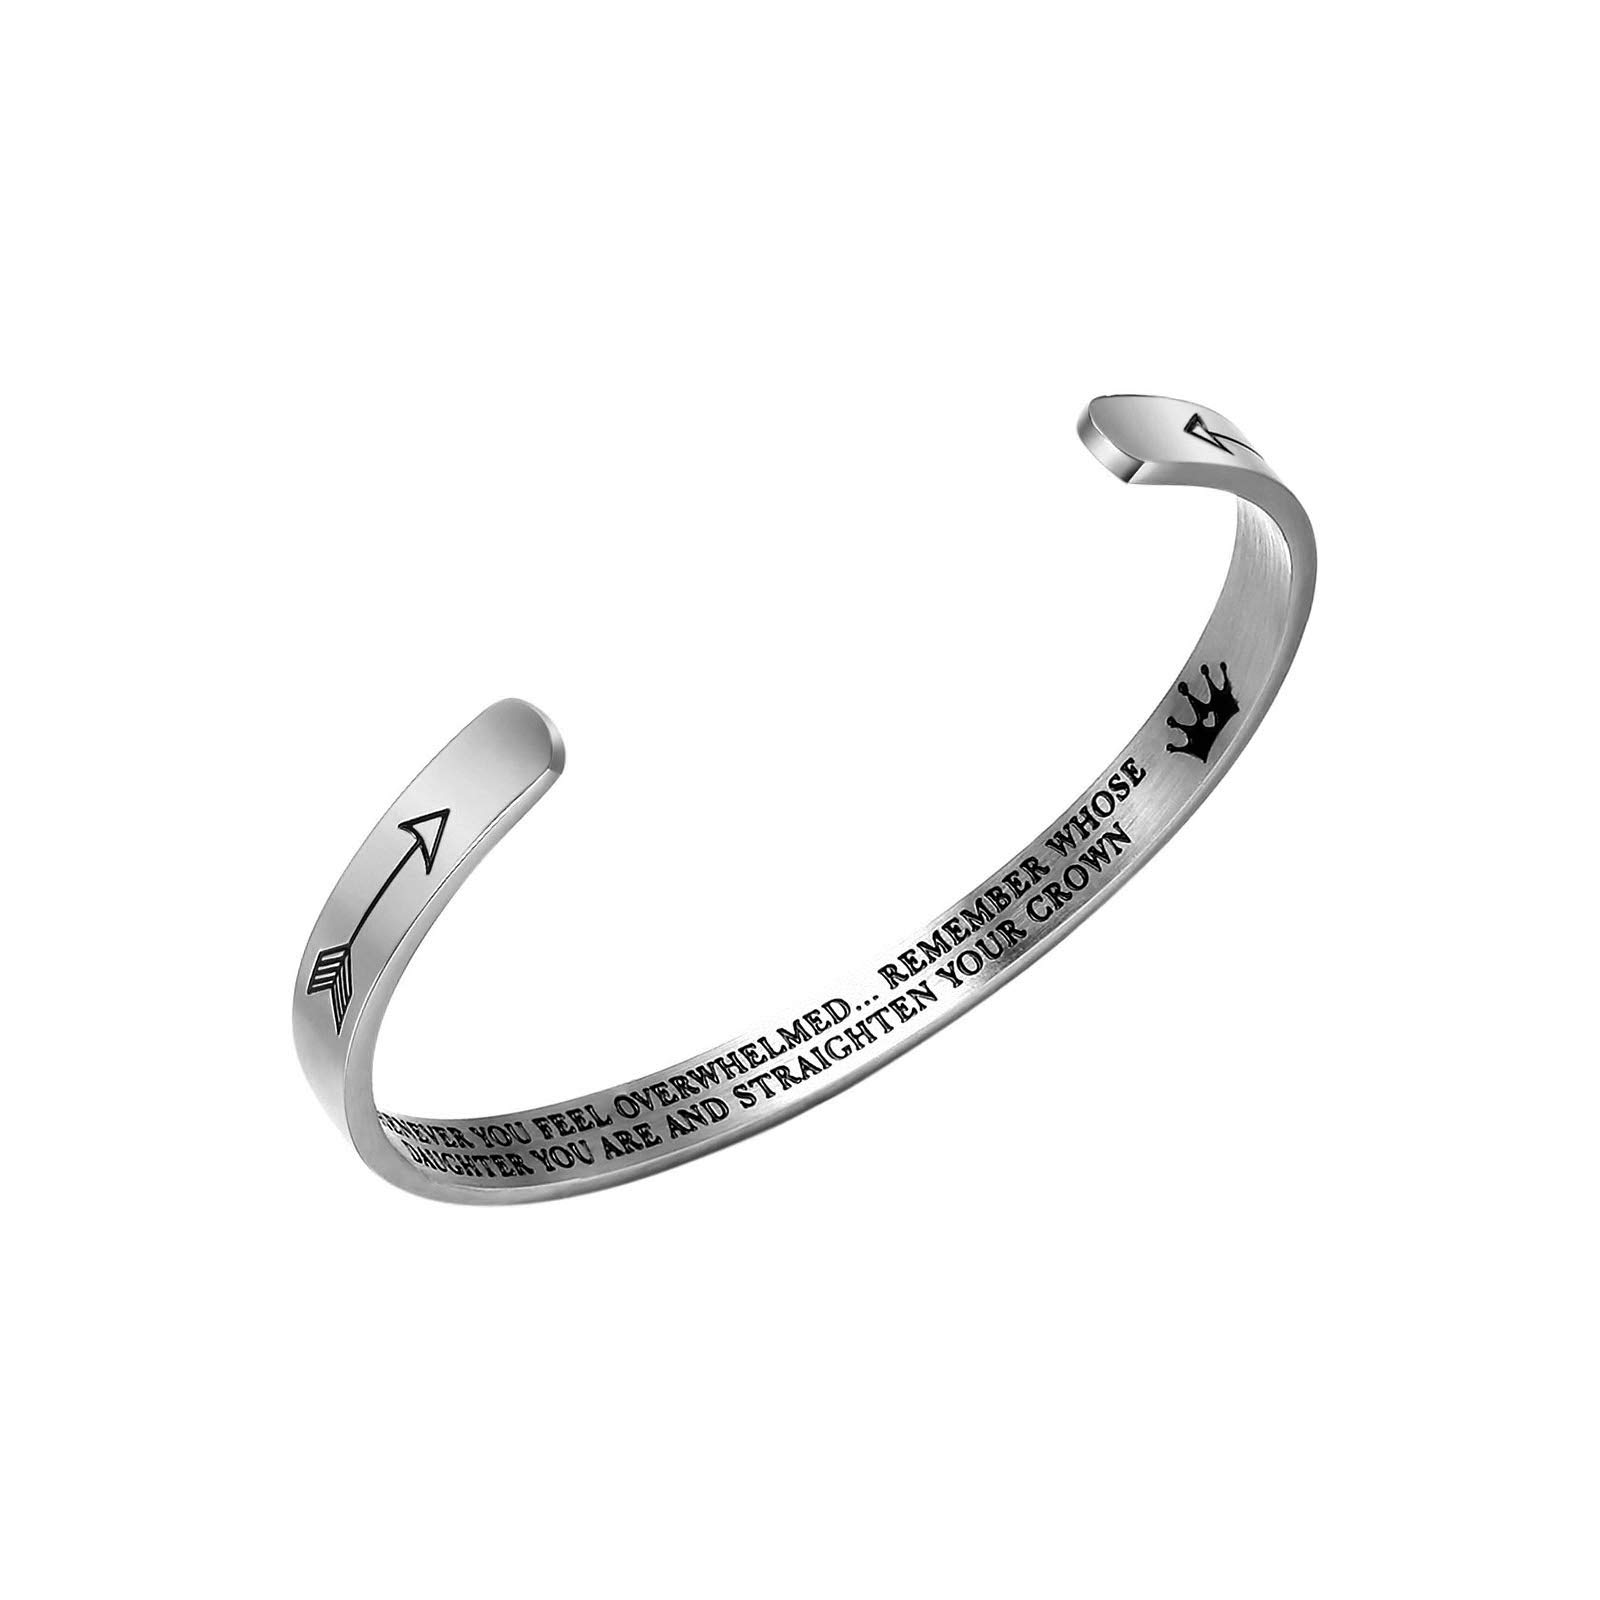 Stainless Steel Jewelry Inspirational Bracelets for Women Girls Personalized Gift Engraved Cuff Bangle for Mom Daughter Teen Girls Gift (Daughter Bracelet) by Stainless Steel